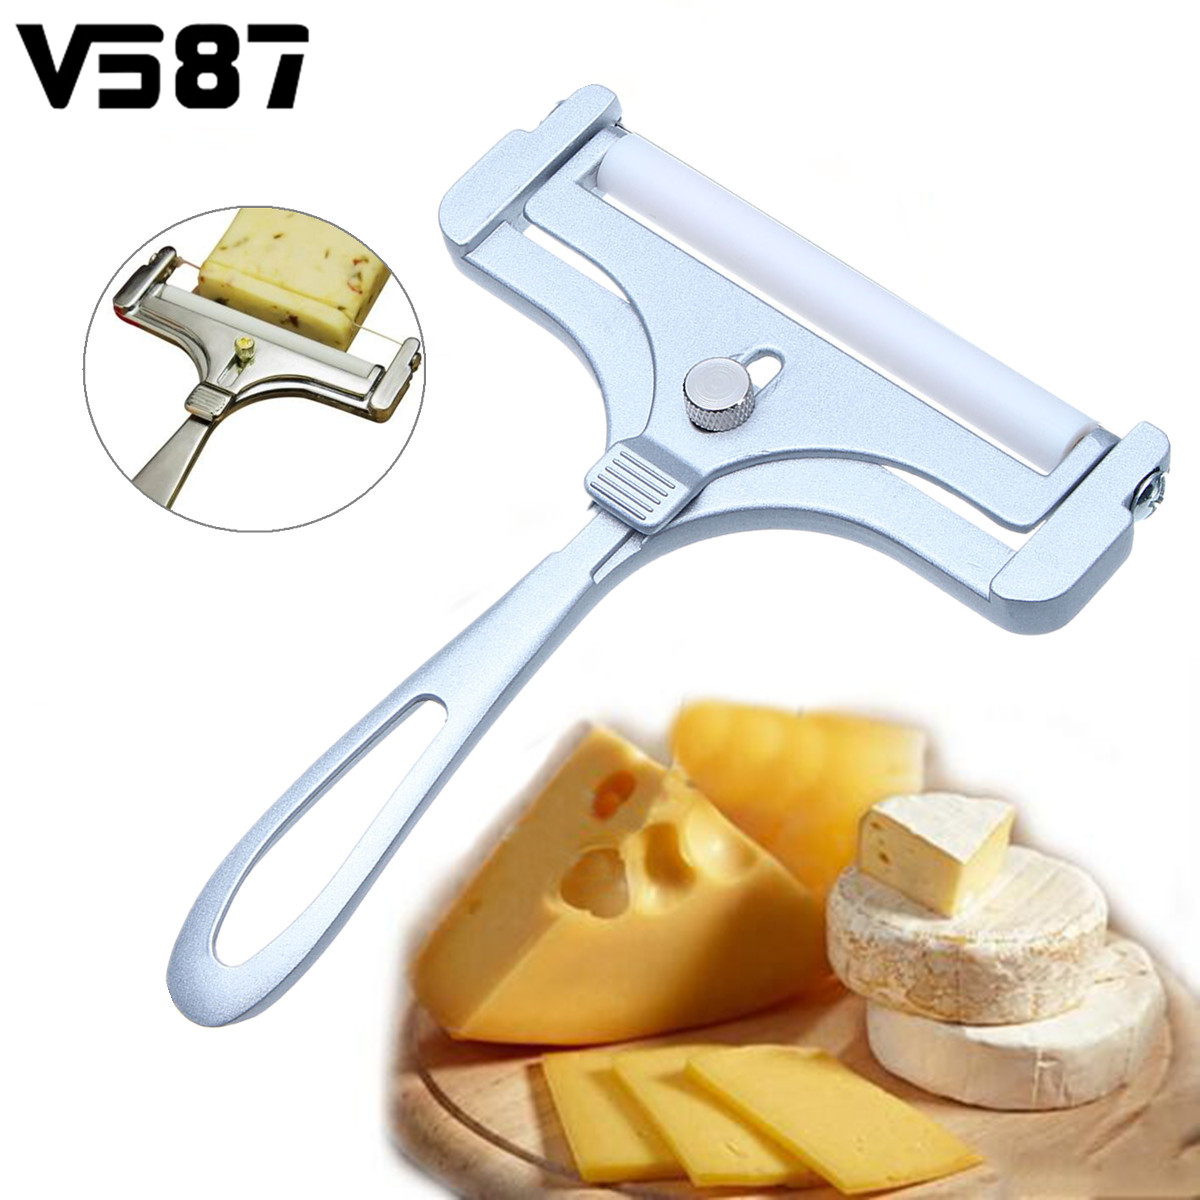 Adjustable <font><b>Cheese</b></font> <font><b>Slicer</b></font> Cutter <font><b>Cheese</b></font> <font><b>Slicers</b></font> Knife Butter Grater <font><b>Wire</b></font> Home Kitchen Baking Cooking Tools Supplies Zinc Alloy image